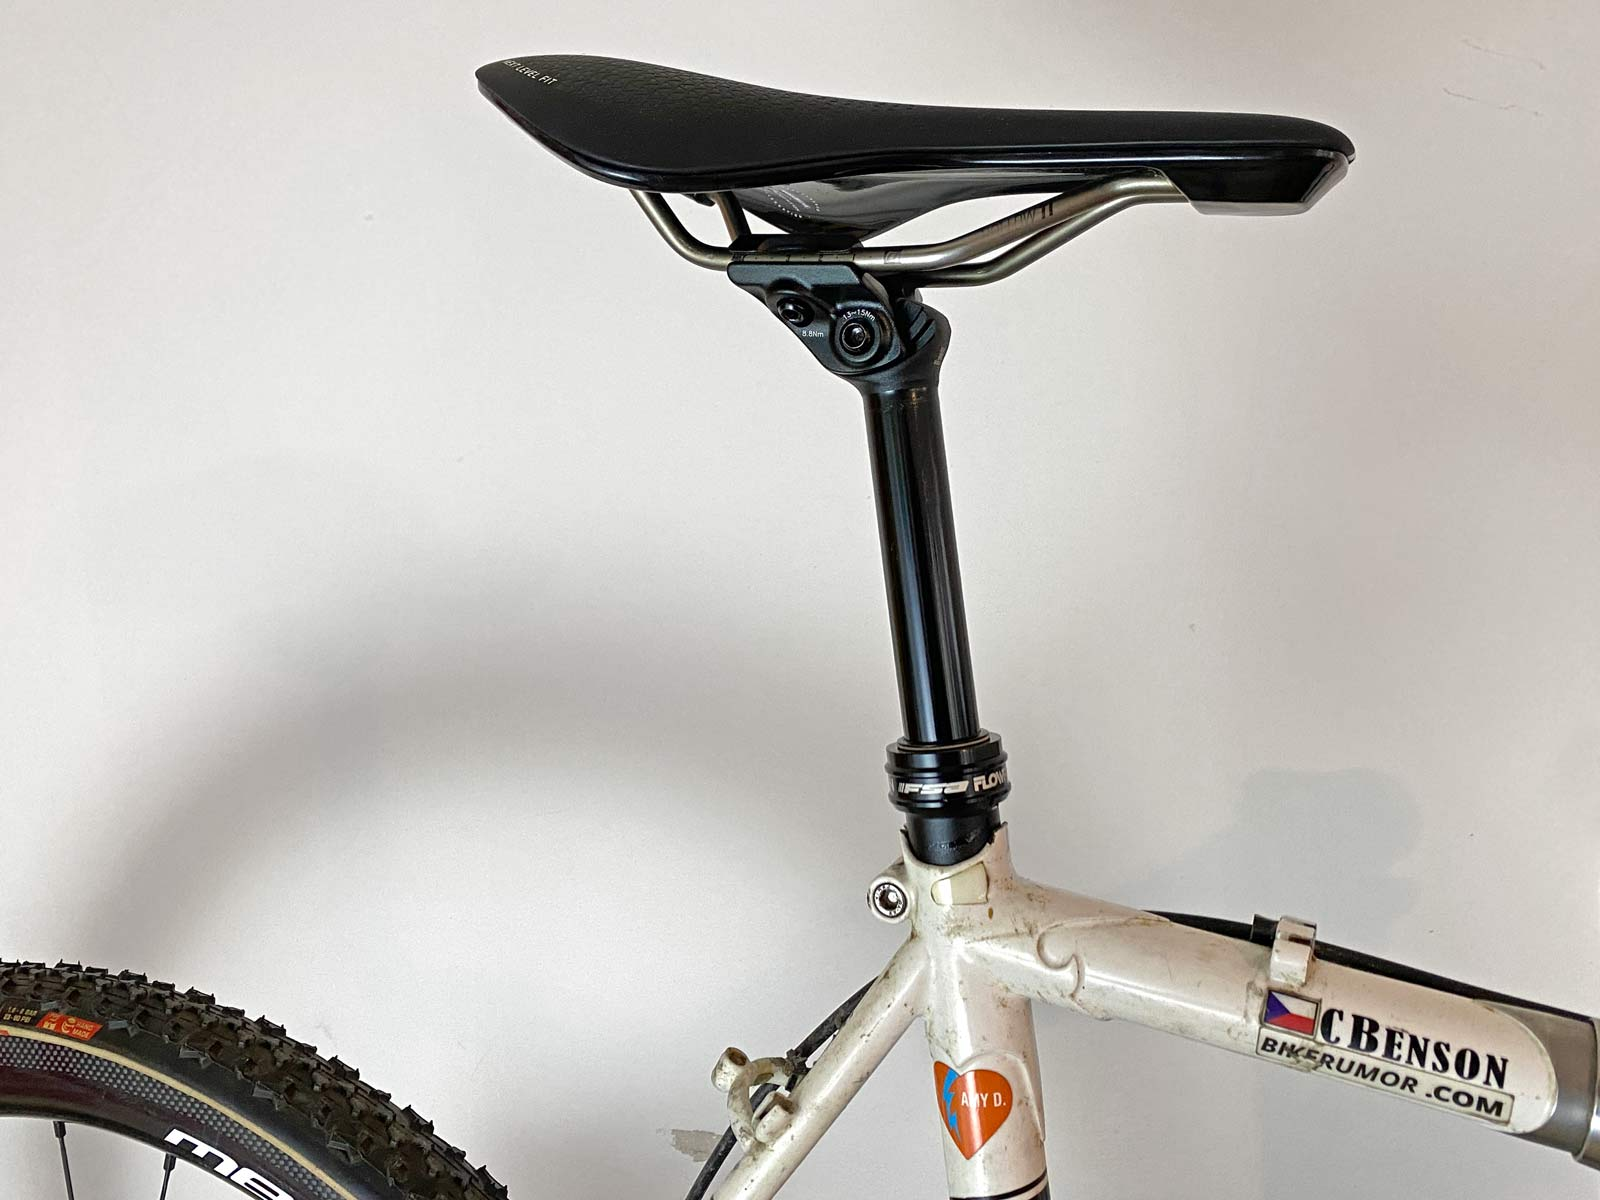 FSA Flowtron AGX gravel dropper post, First Look Review: 27.2mm internally routed dropper seatpost with dropbar remote,on bike